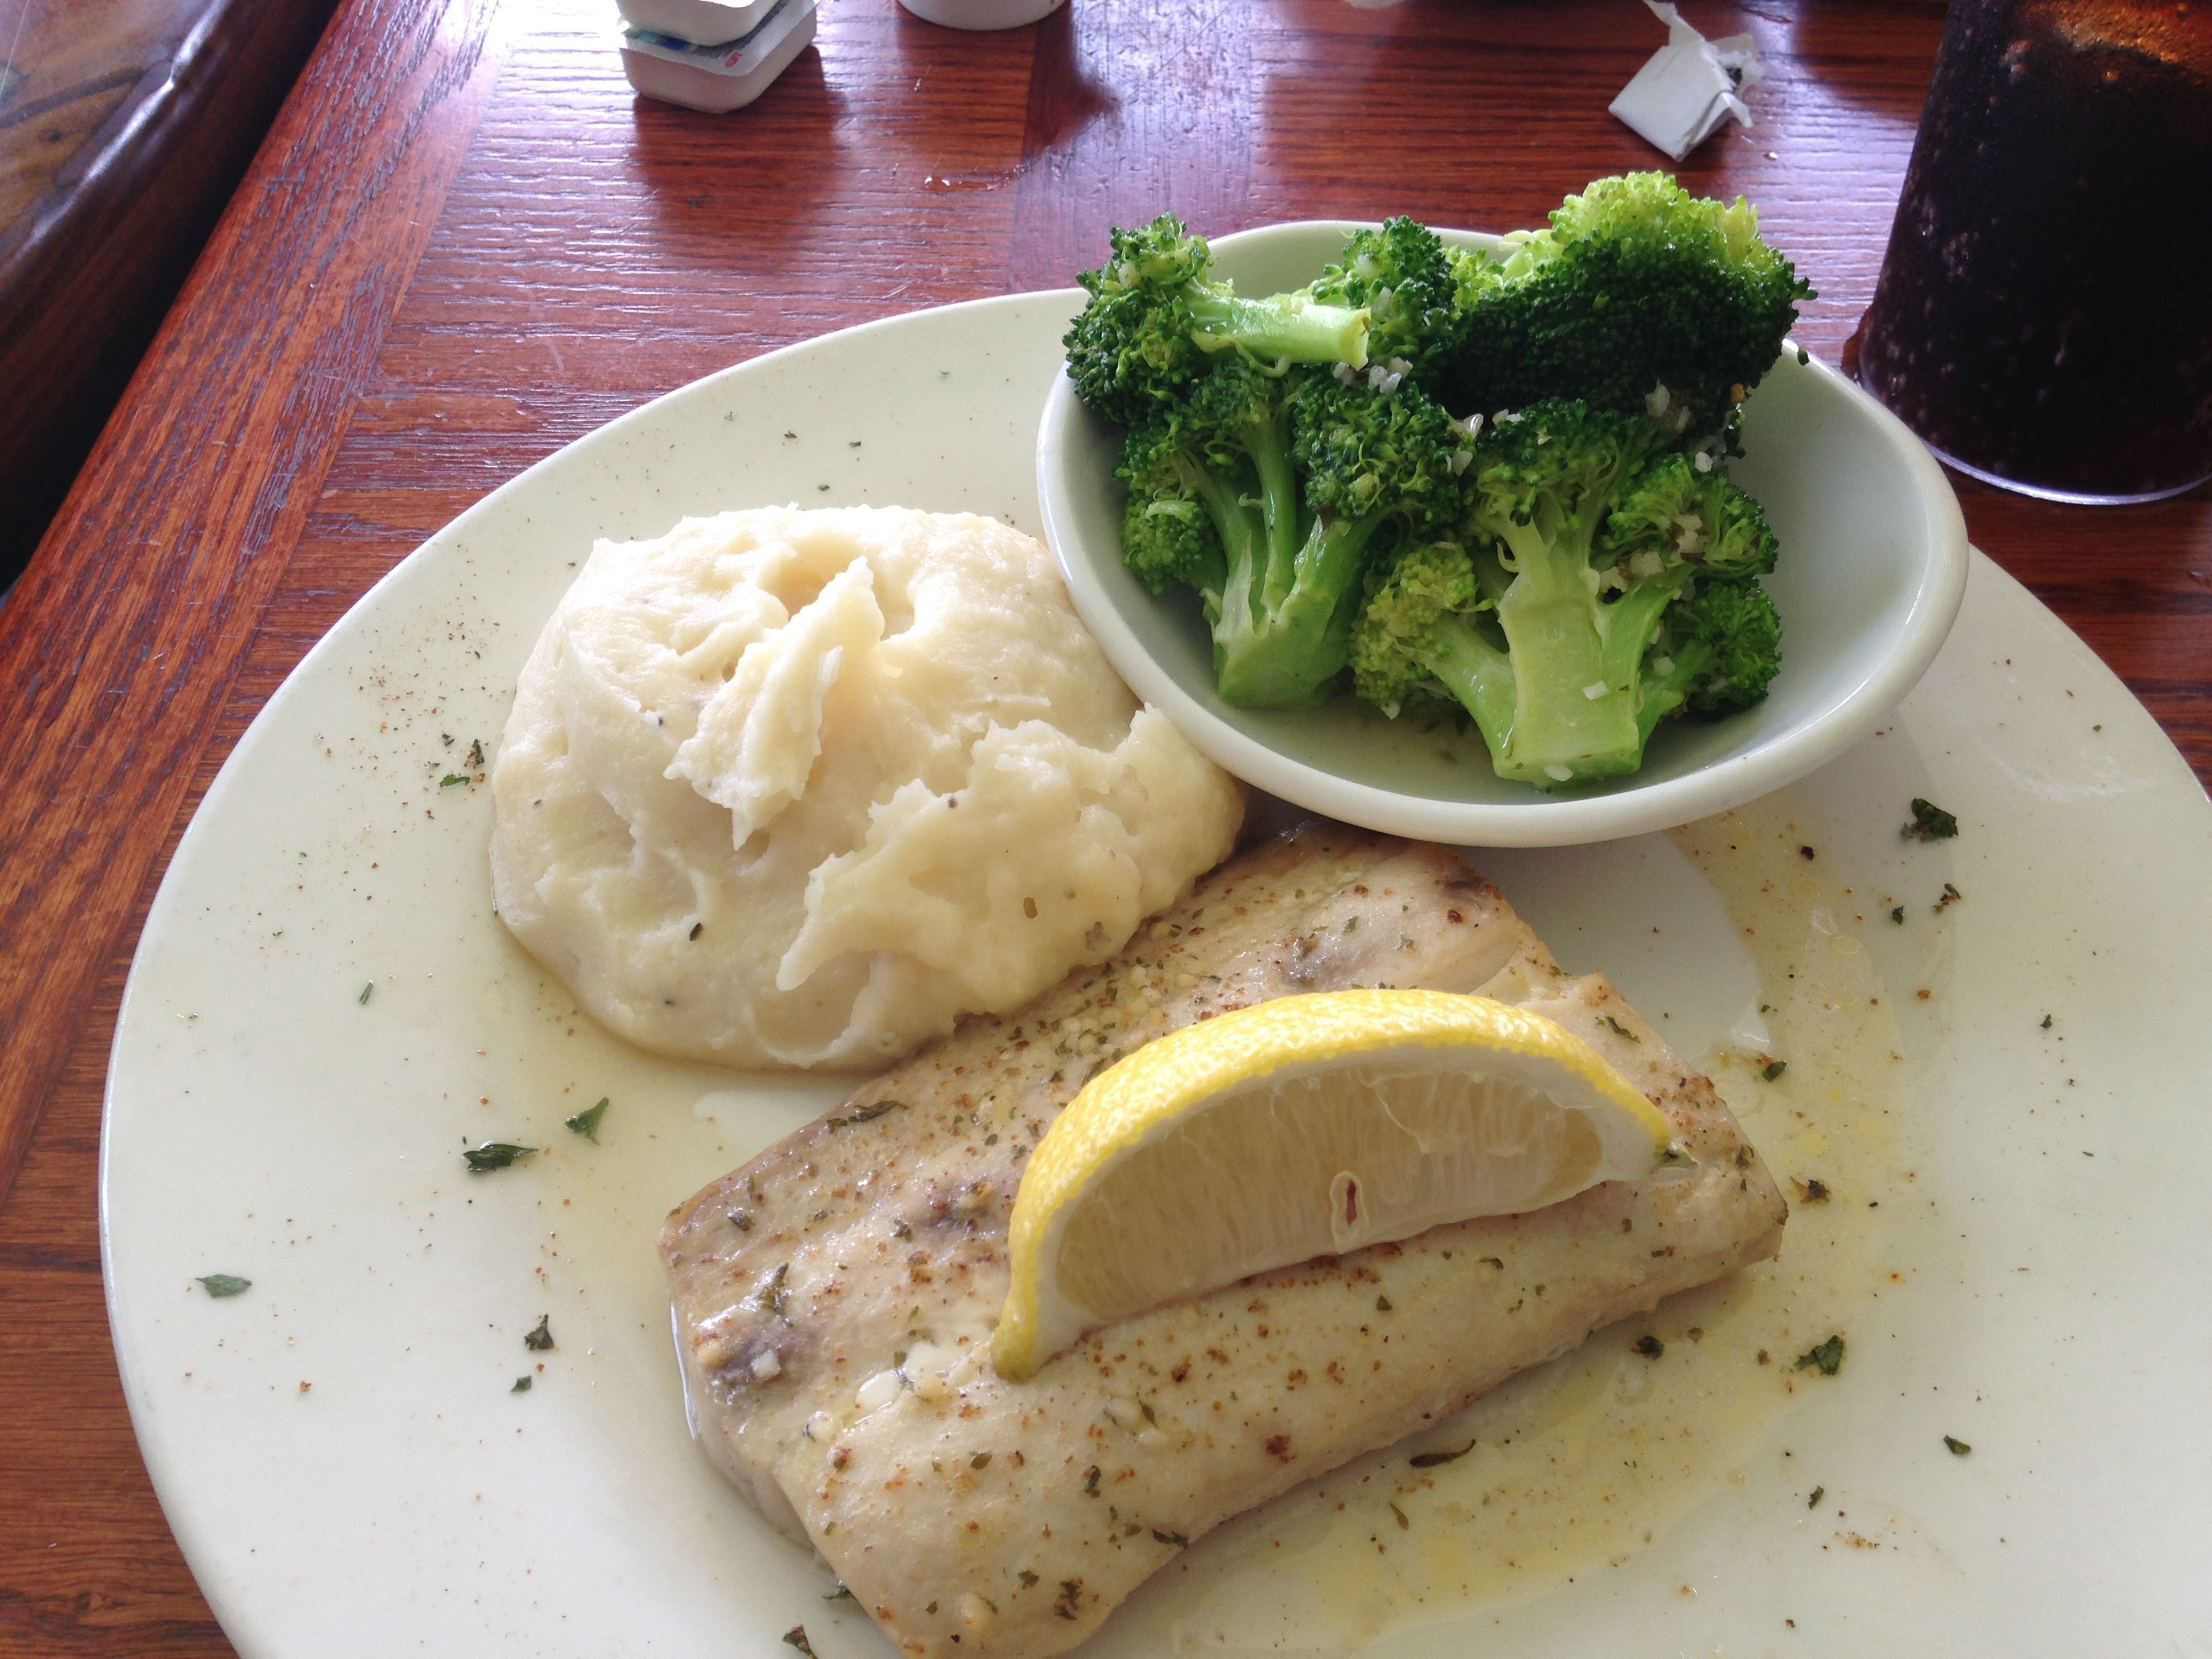 Carribbean Mahi From The Port Steak And Seafood Restaurant In Haines City Florida